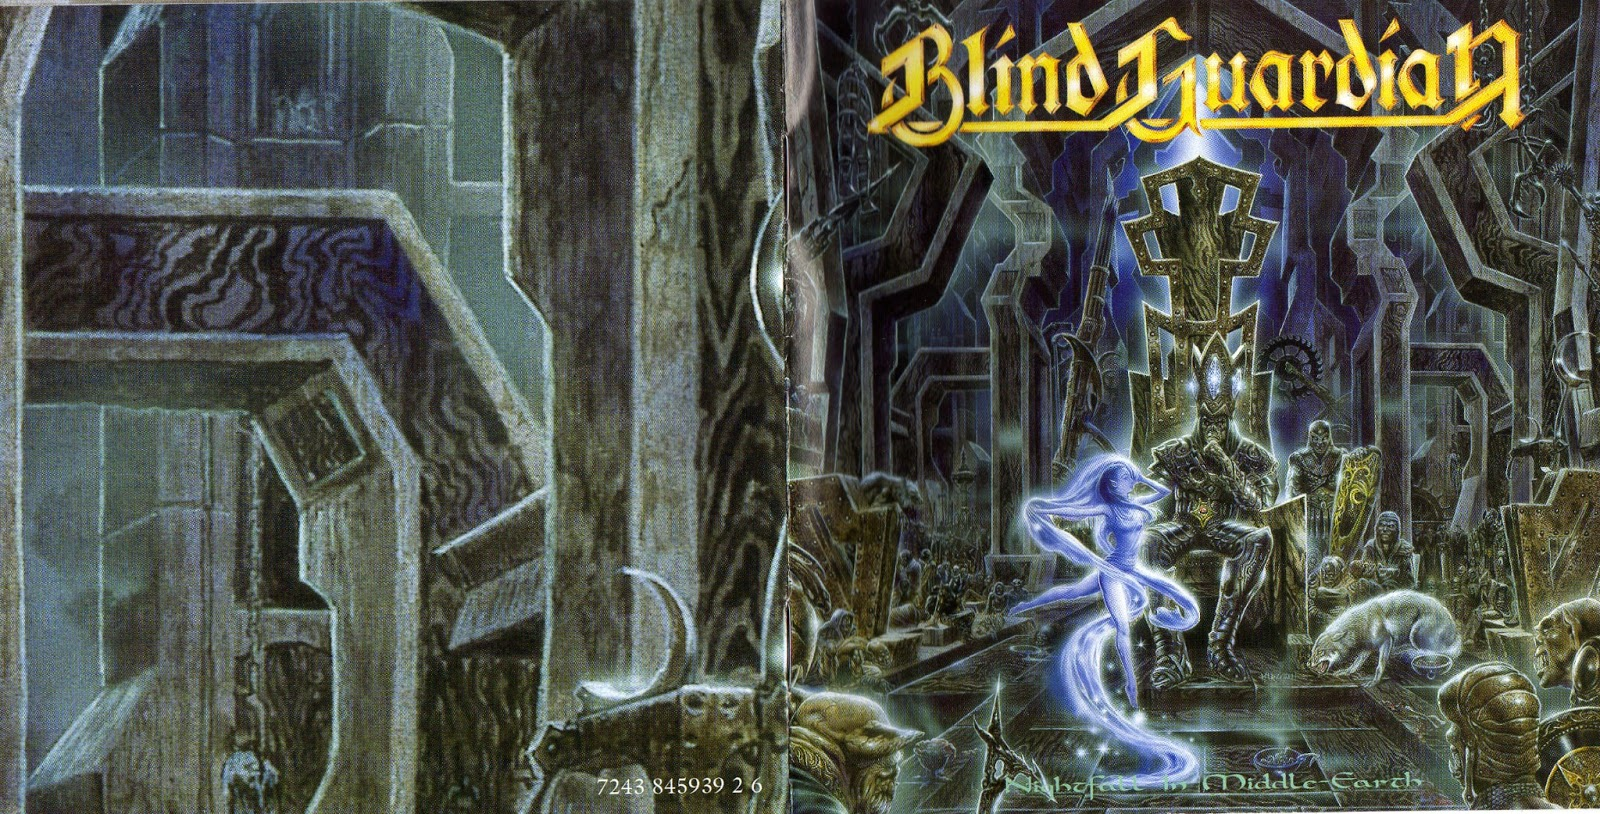 Browse all of the blind guardian photos, gifs and videos